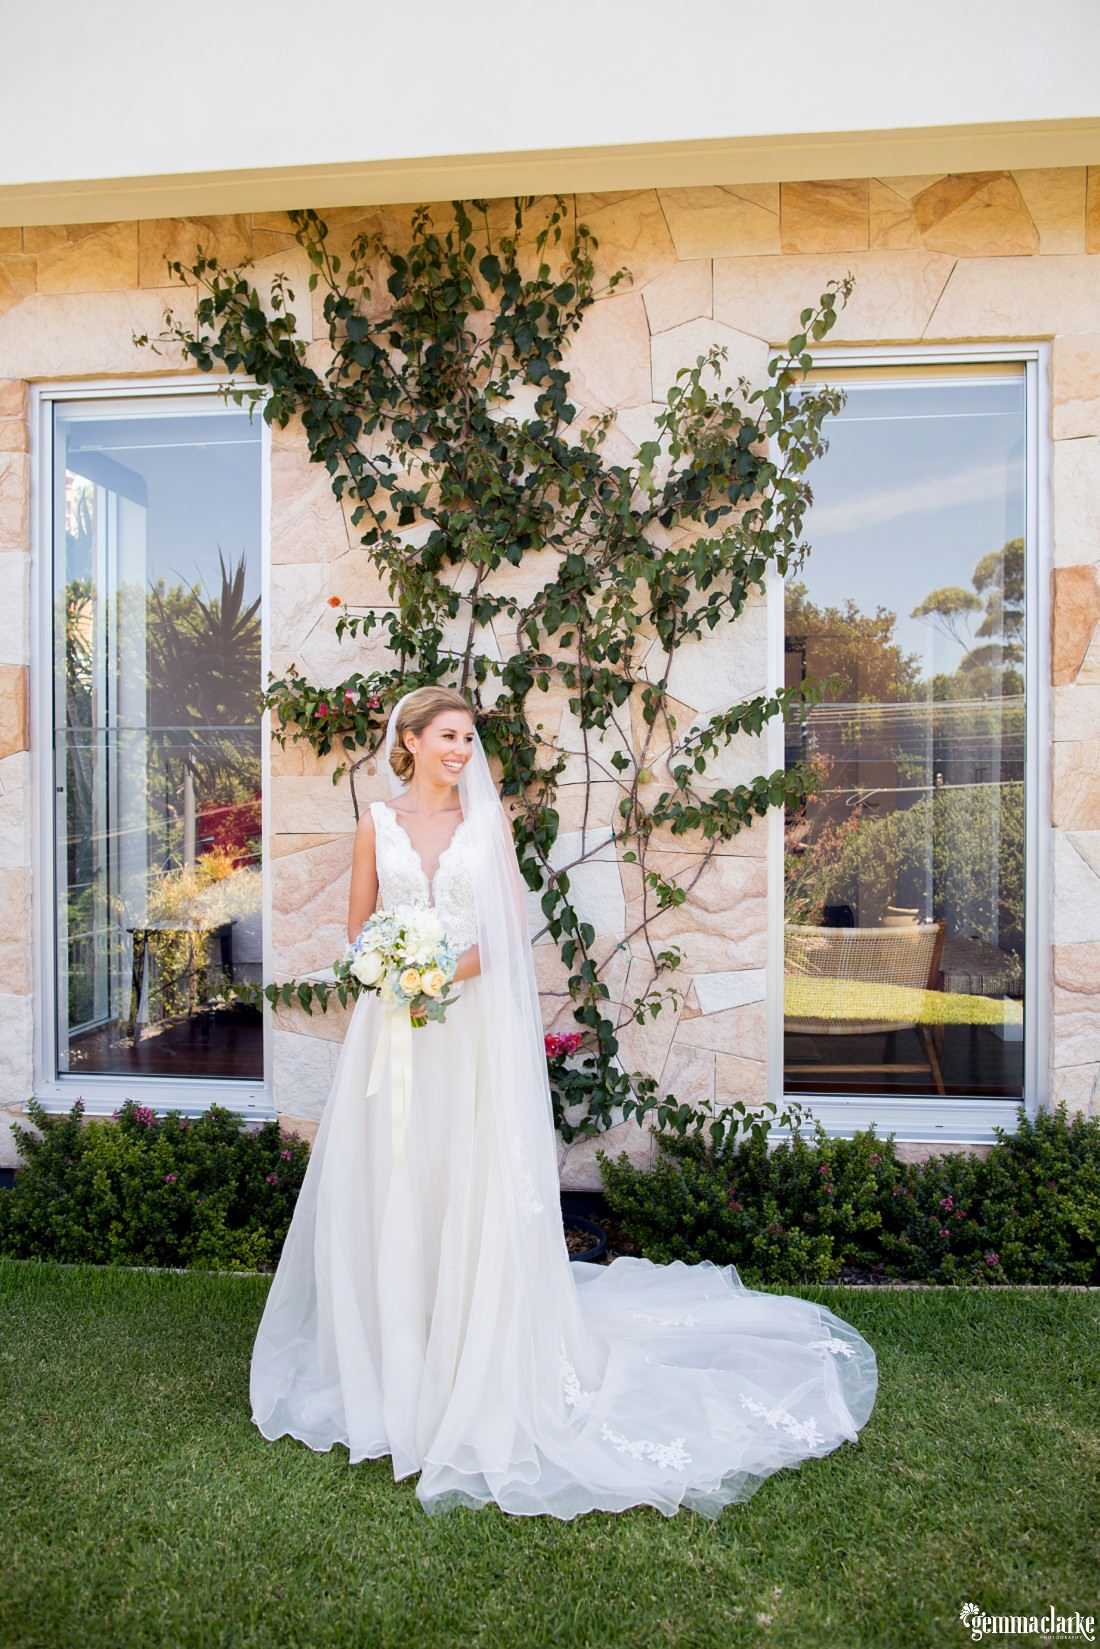 A bride posing in a garden in front of a house